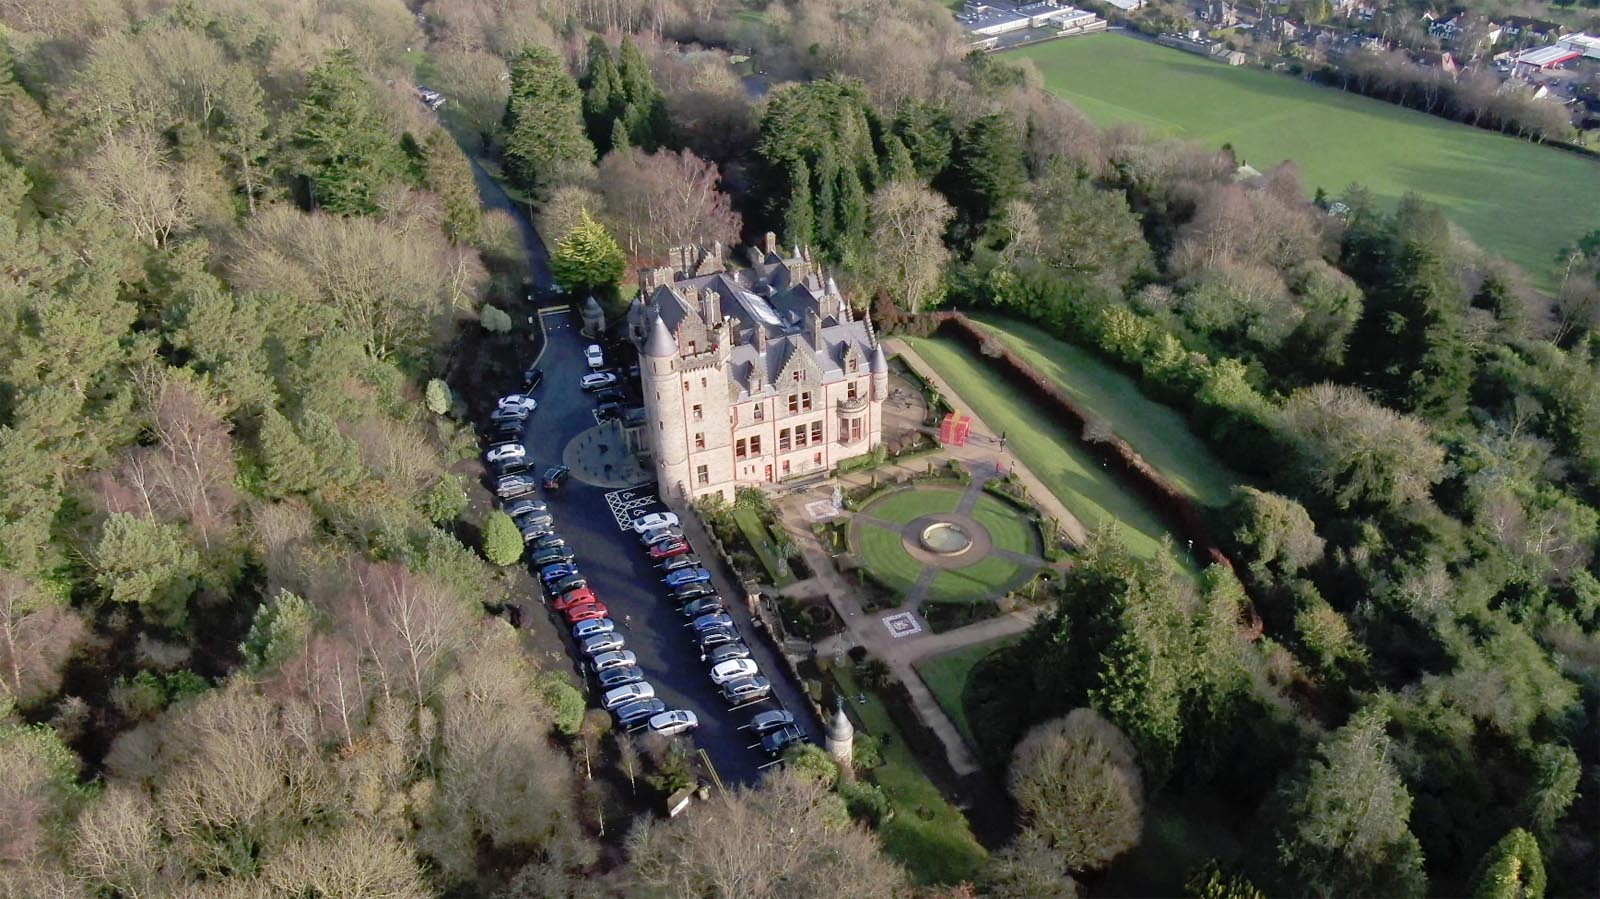 Aerial drone photography and video production services Dublin and Ireland portfolio - changing seasons in one video of Belfast Castle, Northern Ireland, video screenshot 2